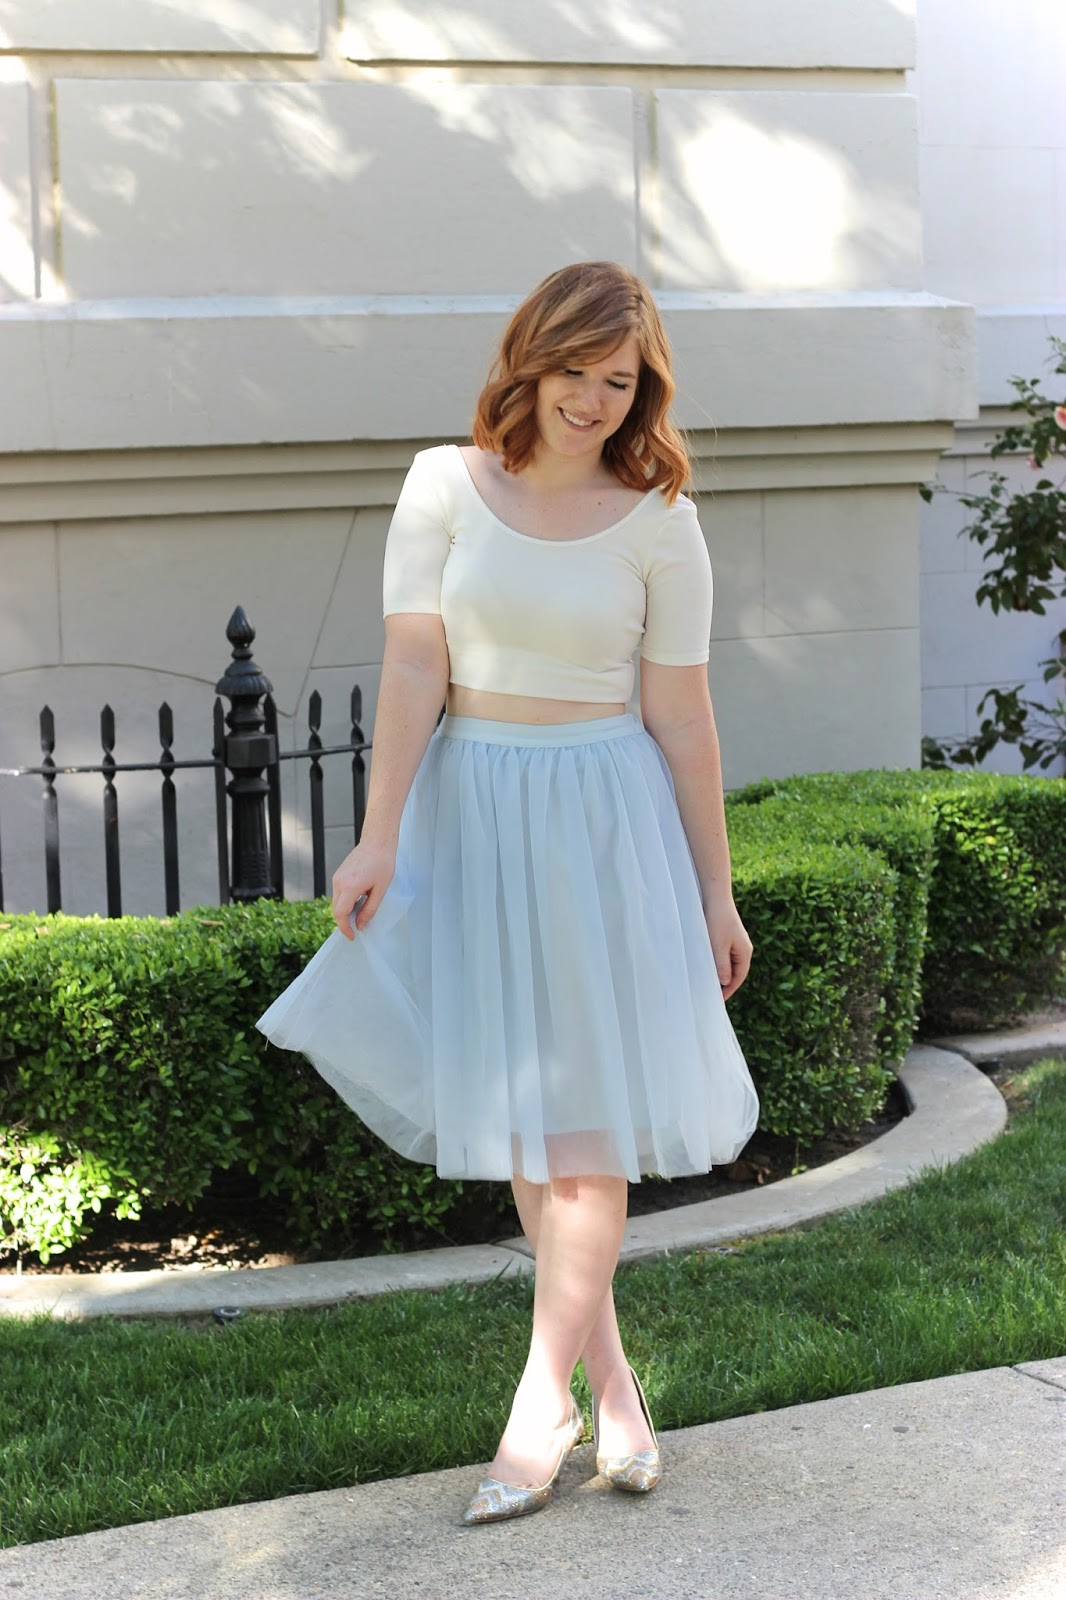 Kathleens Closet: Cinderella Inspired Outfits ♥ ft. LC by